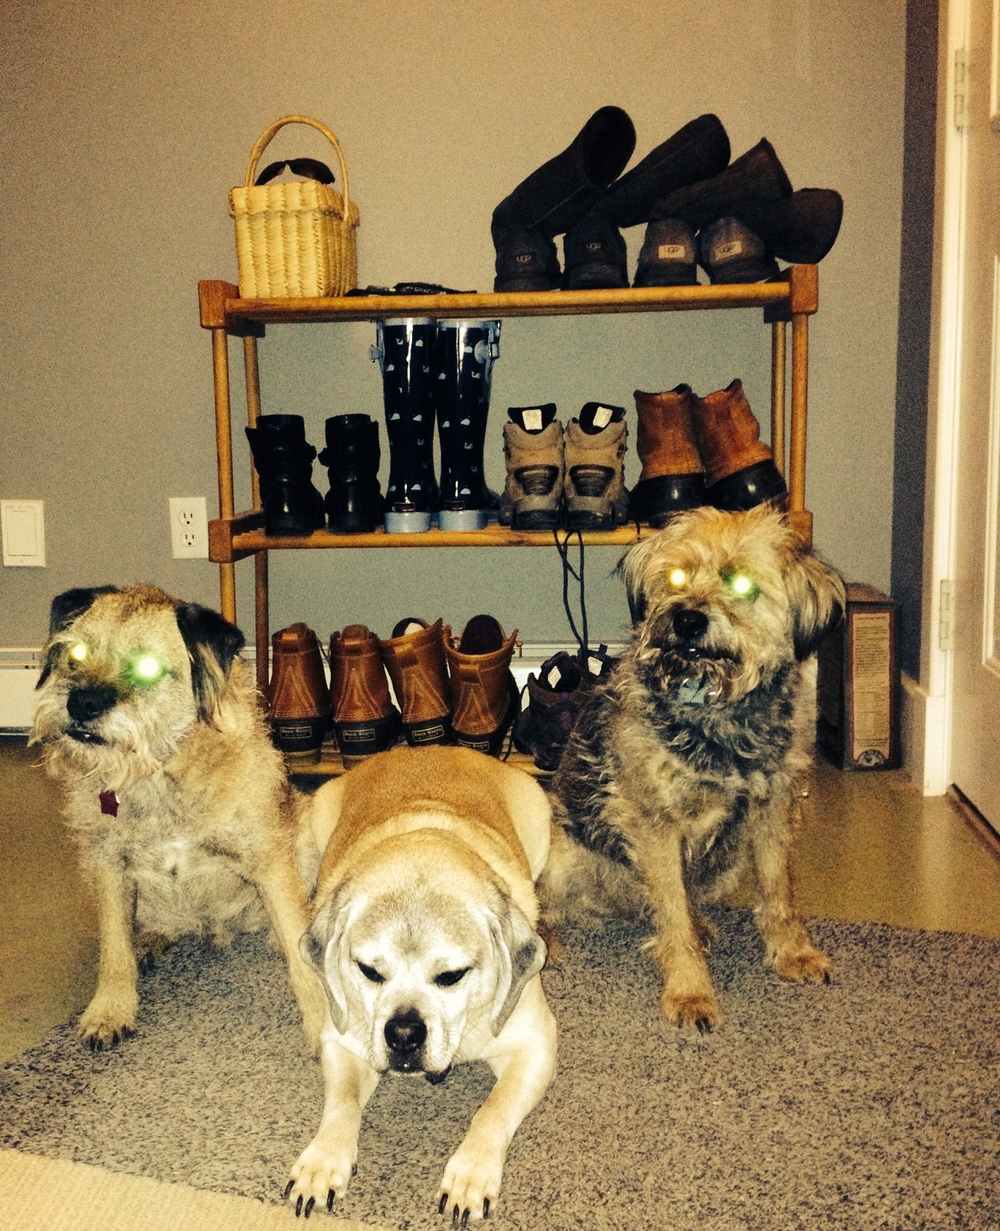 None of these three good dogs is actually evil. Their owner just can't figure out how to make their eyes look normal. They are posing with our collection of snow boots, hoping a walk is in their future.